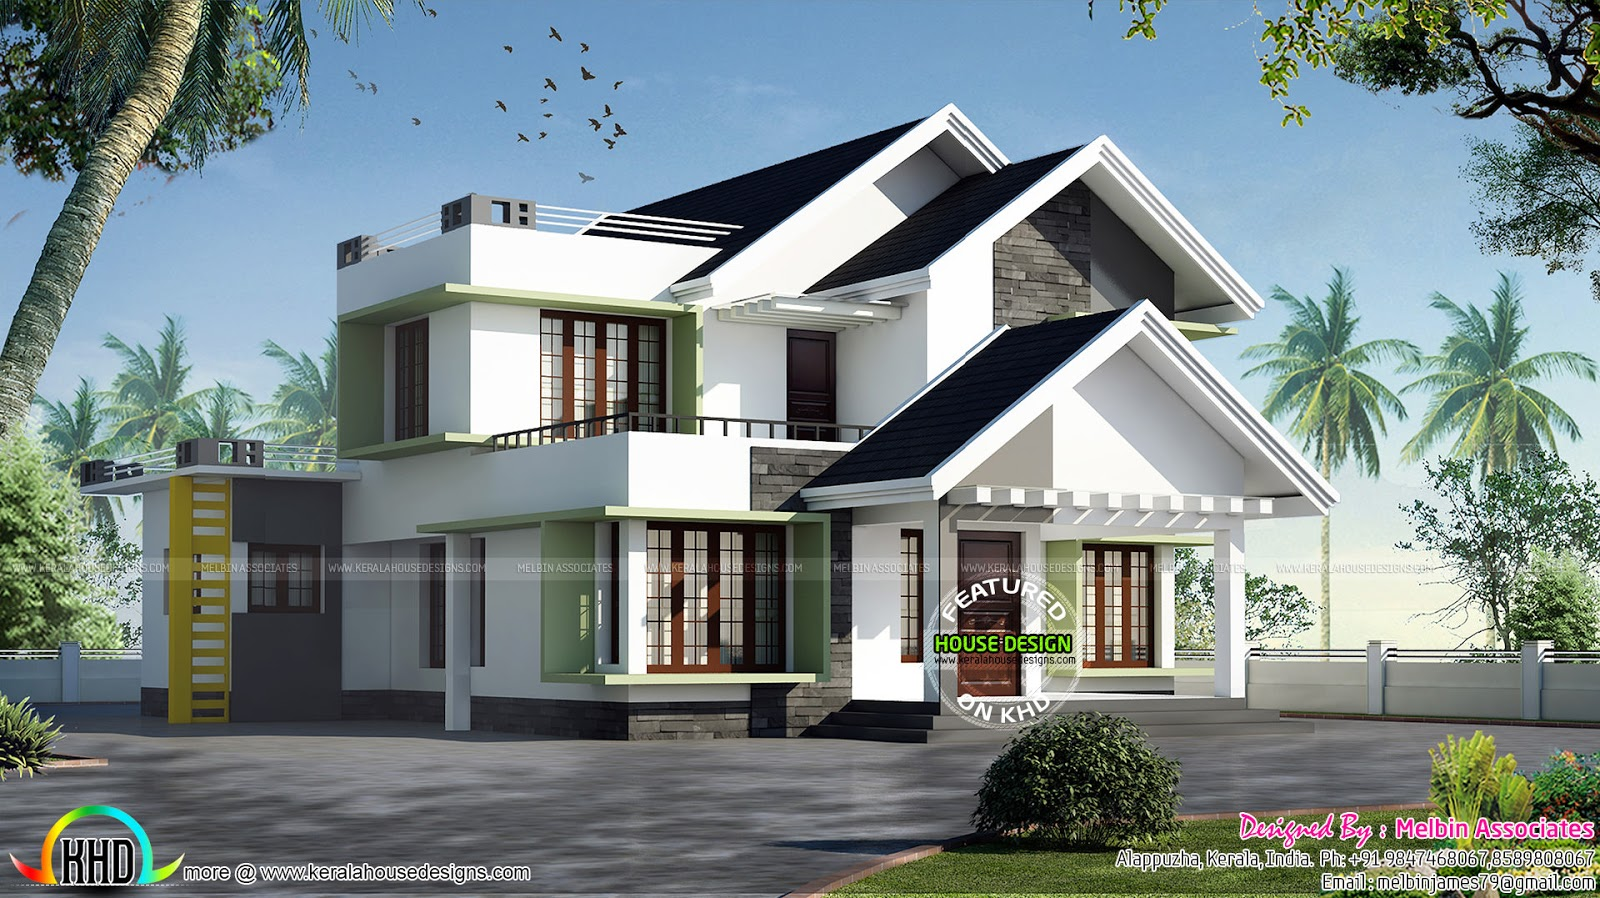 Modern House With 2 Color Variants Kerala Home Design And Floor Plans